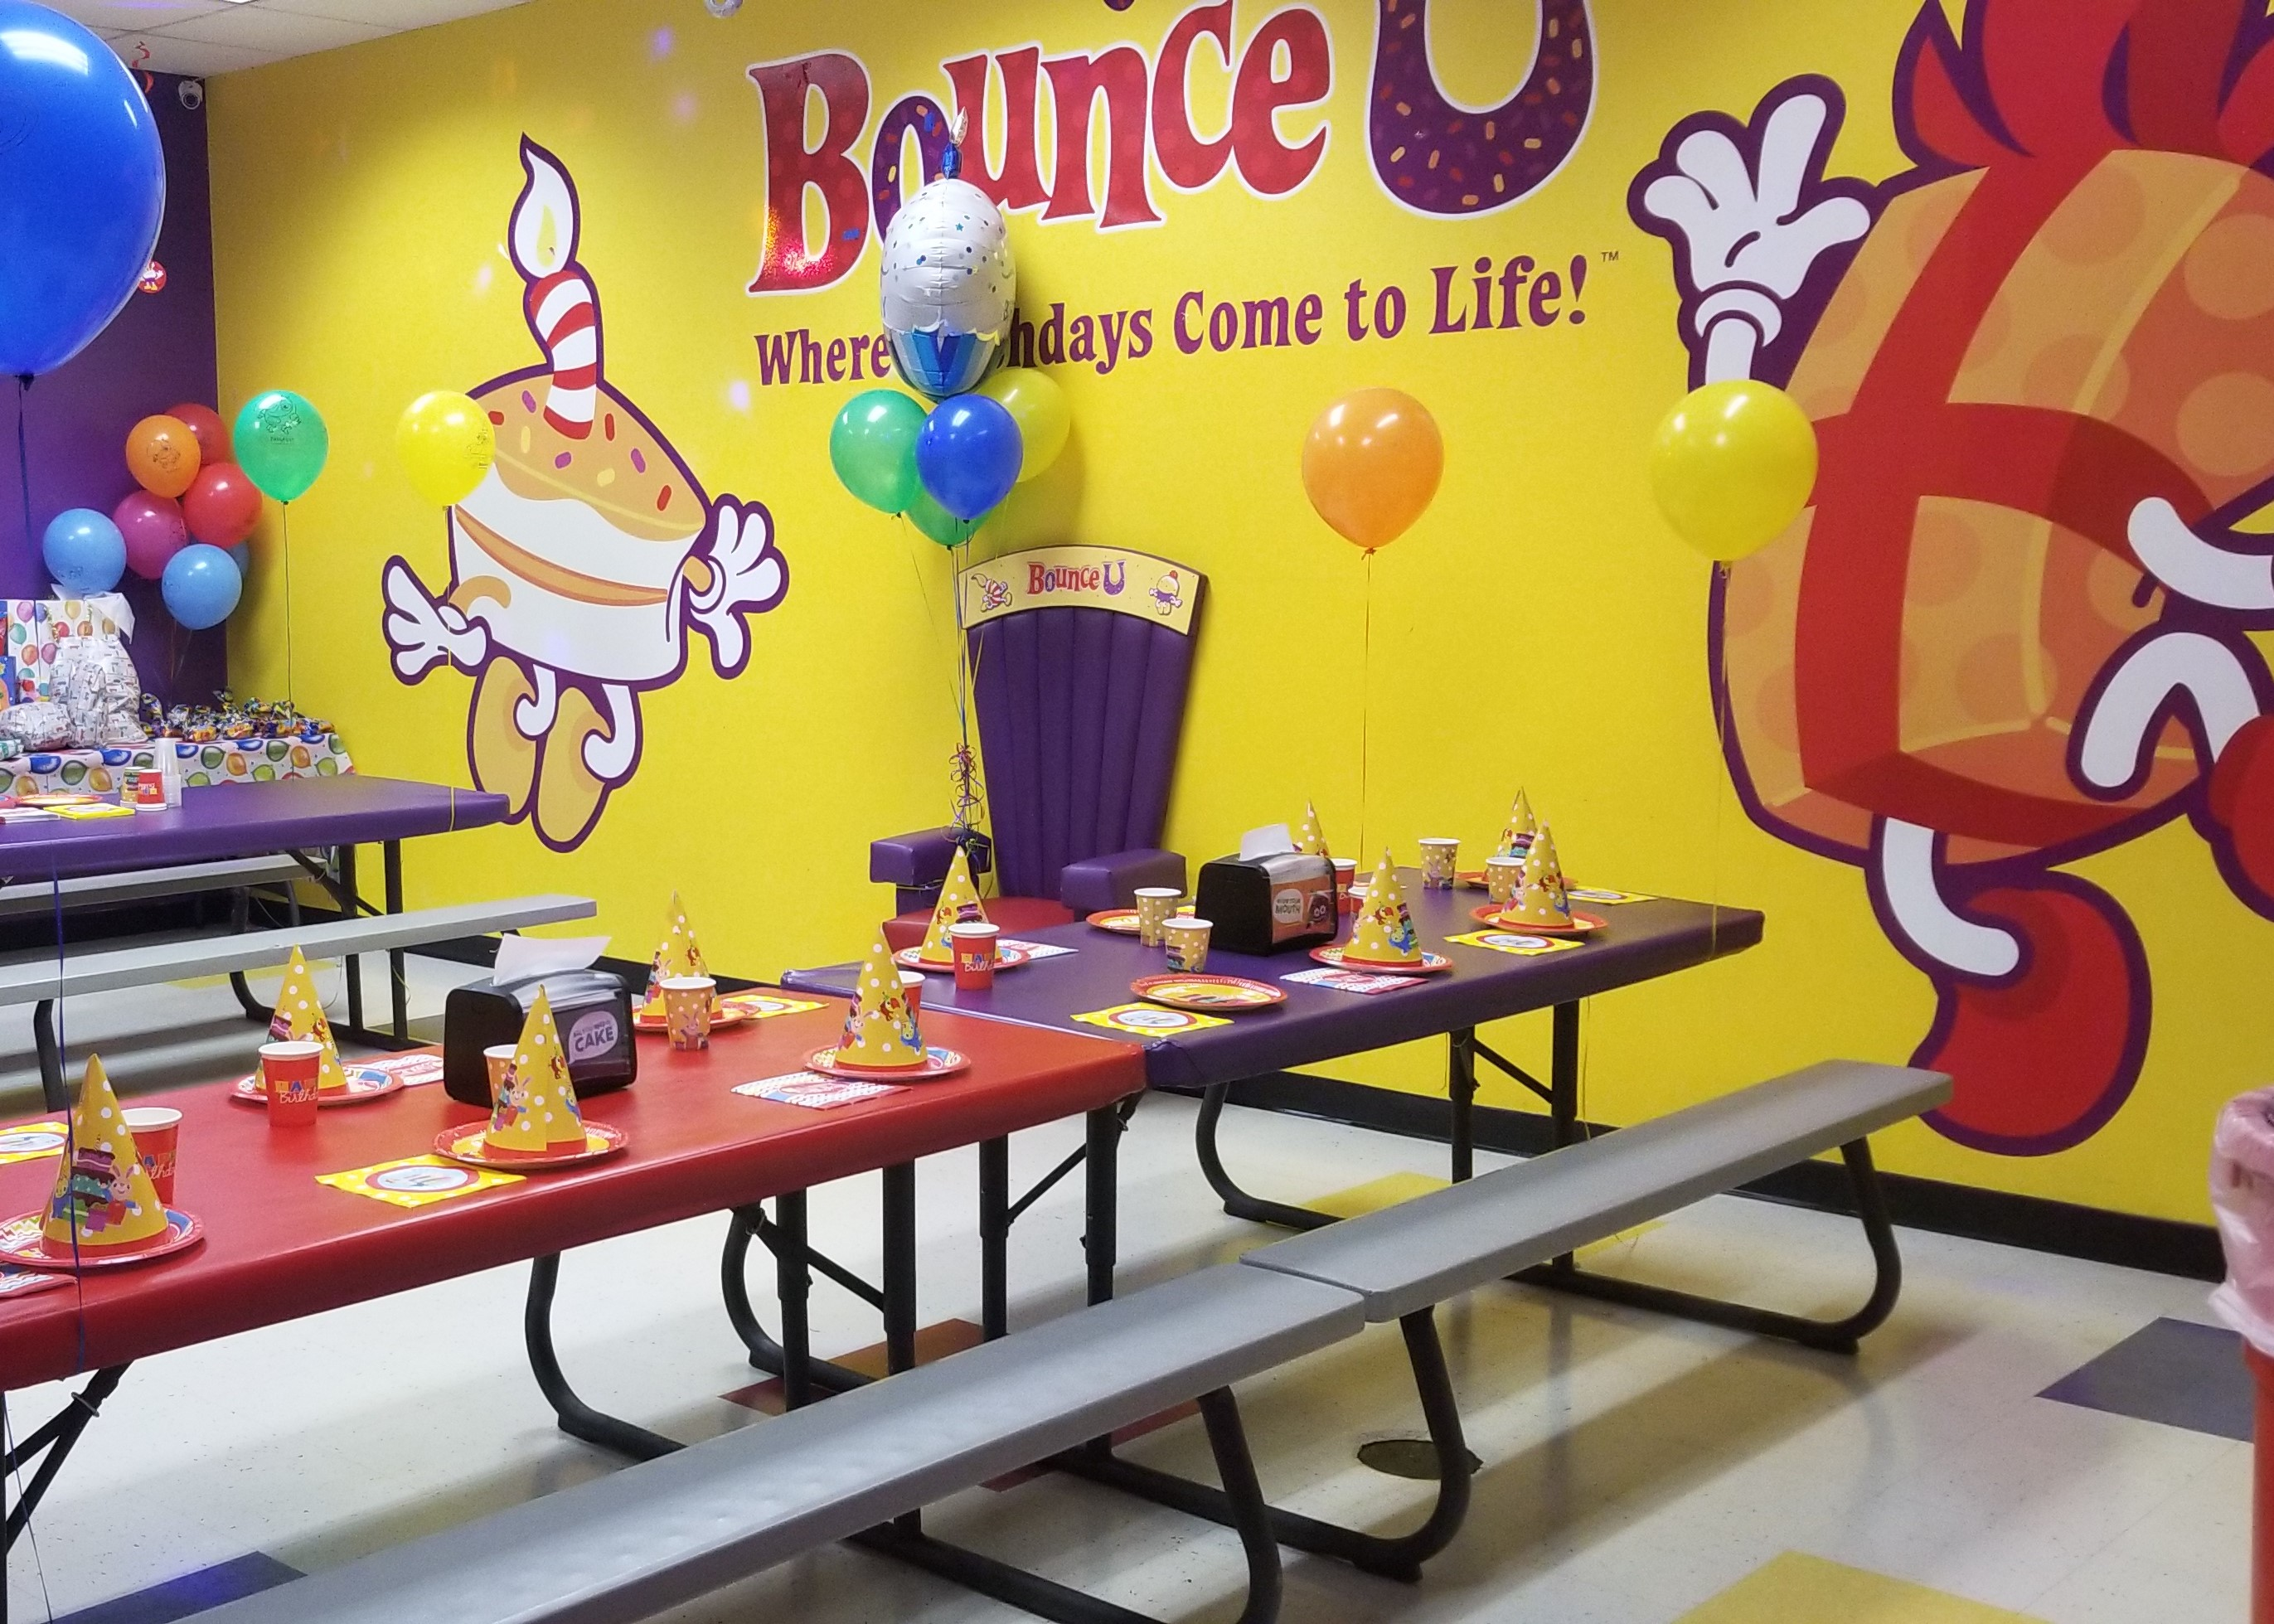 BounceU birthday party room with tables set up with plates and cups.